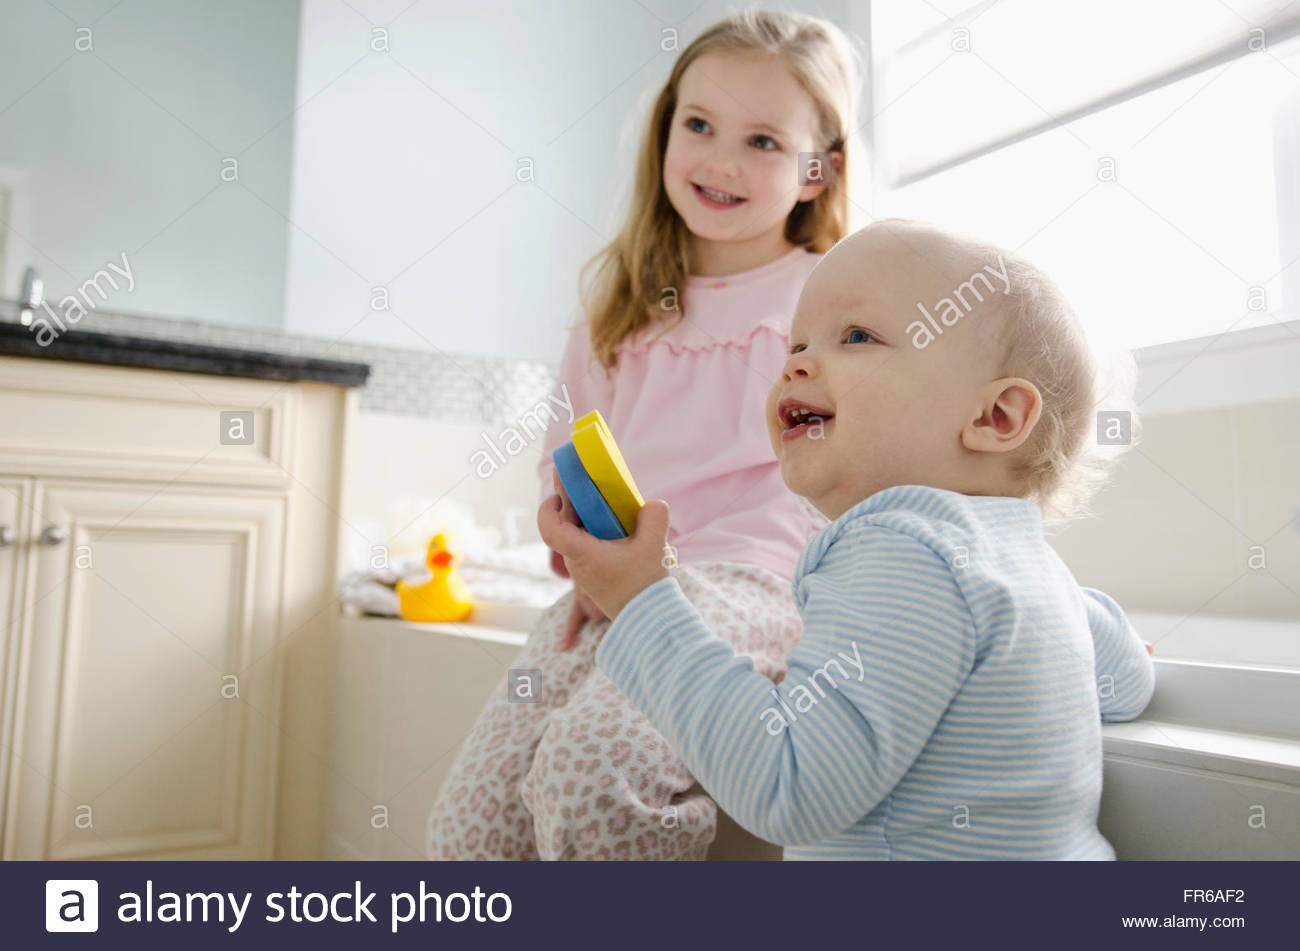 young girl with younger brother in bathroom Stock Photo